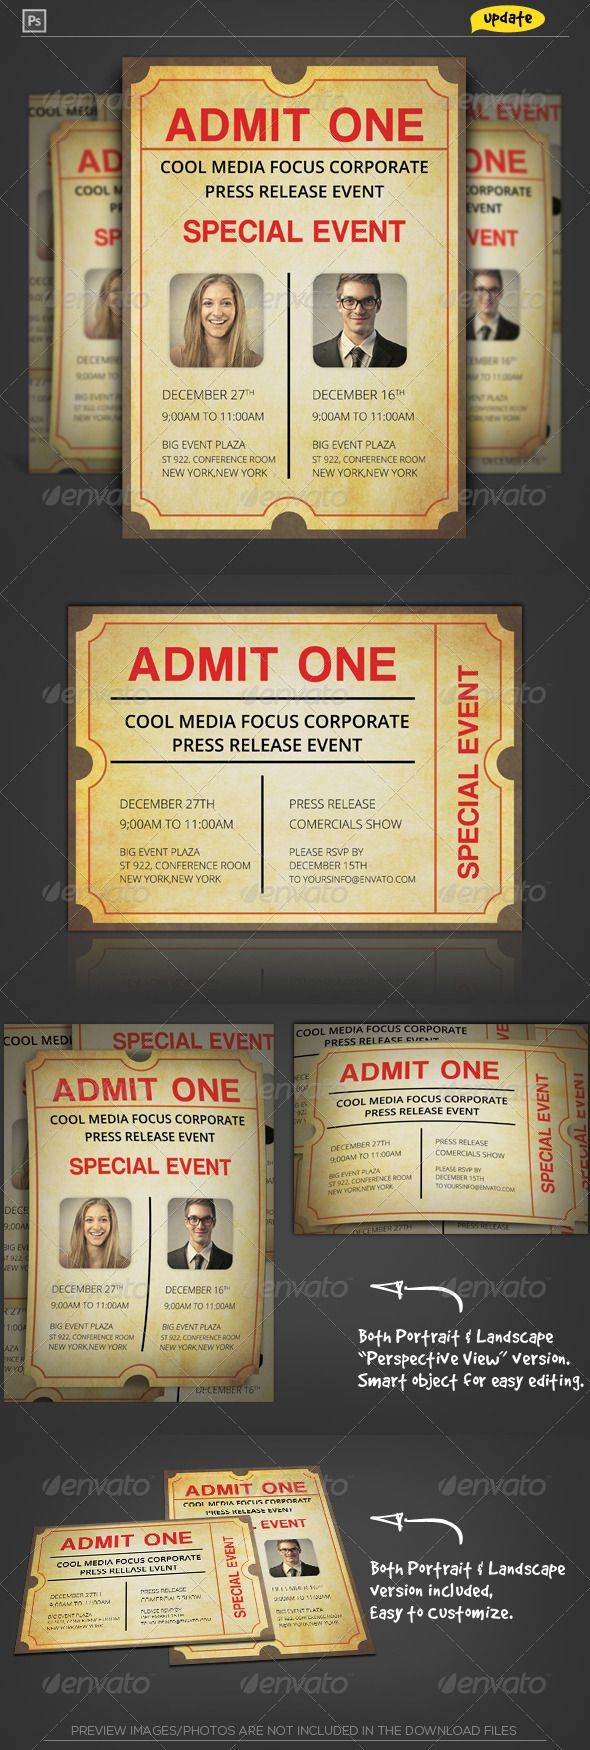 Admit One Ticket Corporate Invitation  Corporate Invitation